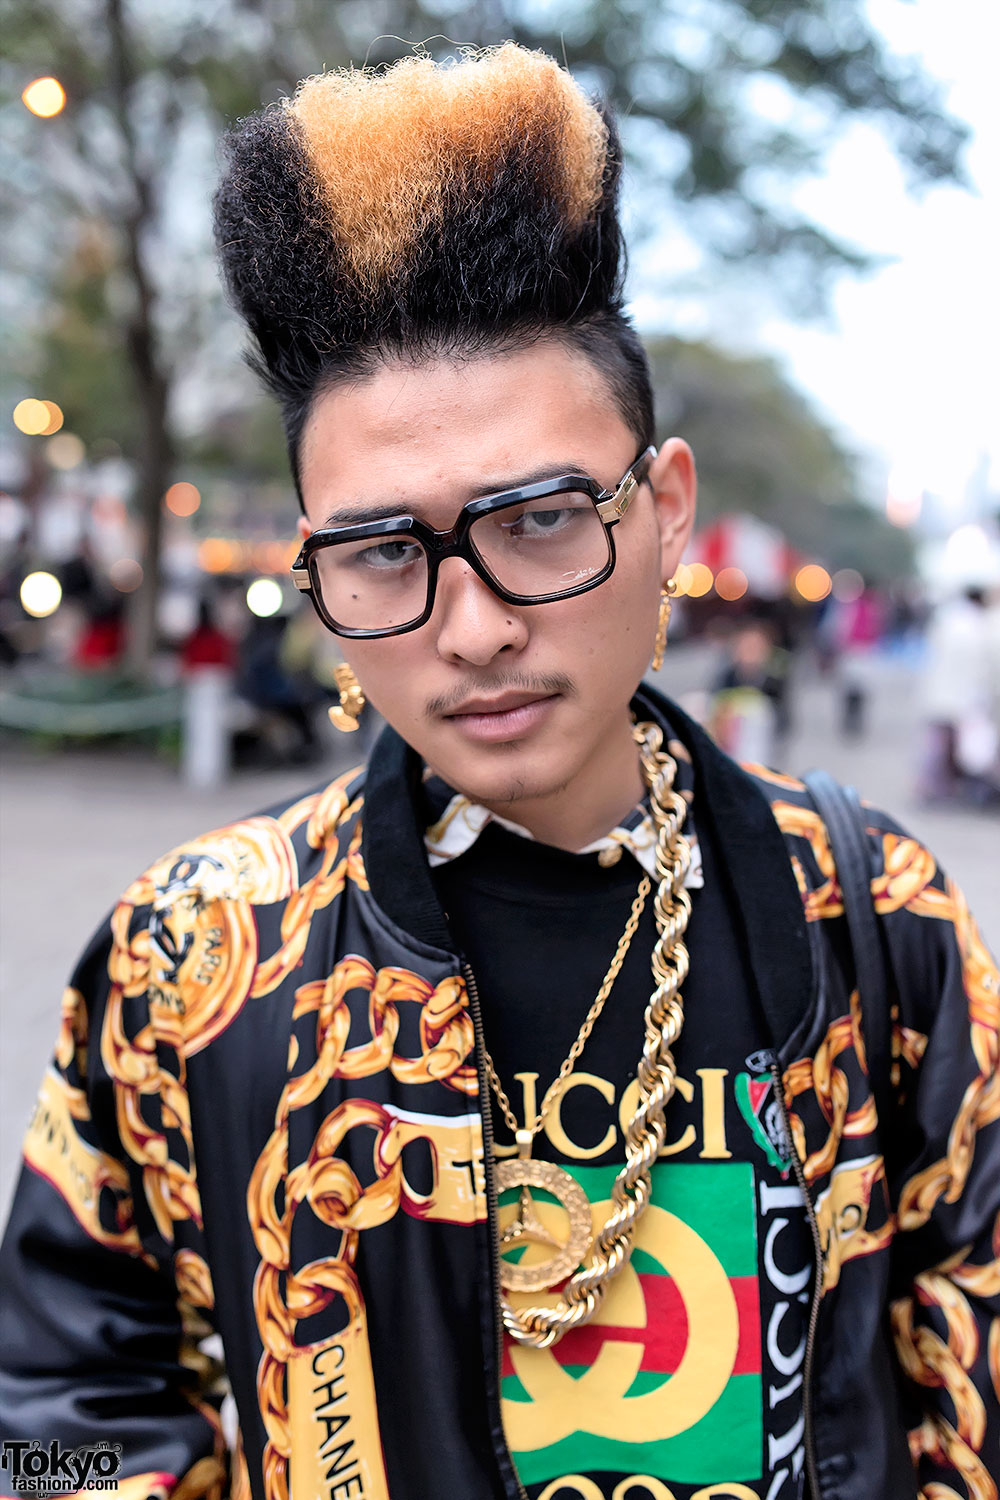 Hi Top Fade Gold Chains Amp 1980s Hip Hop Inspired Street Style